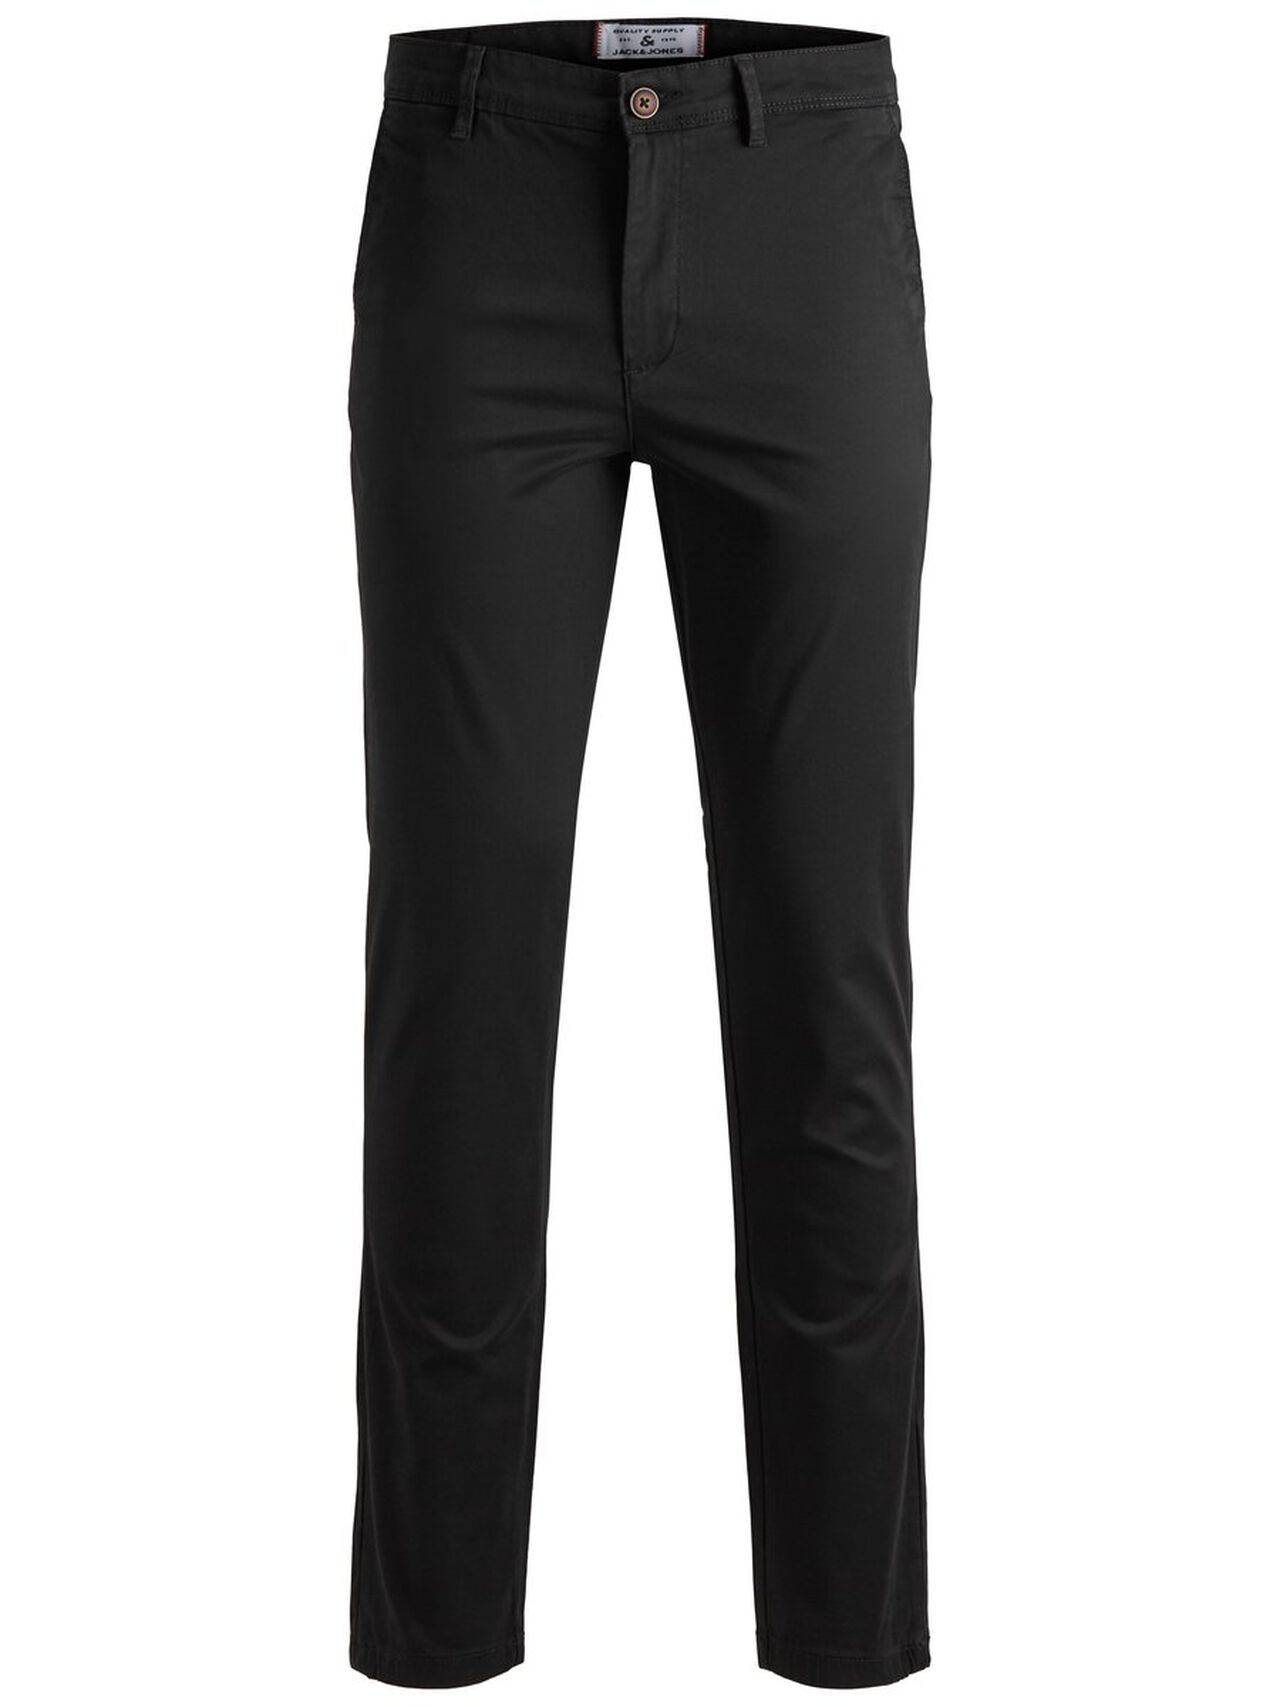 JACK & JONES Marco Bowie Slim Fit Chinos Men Black Black